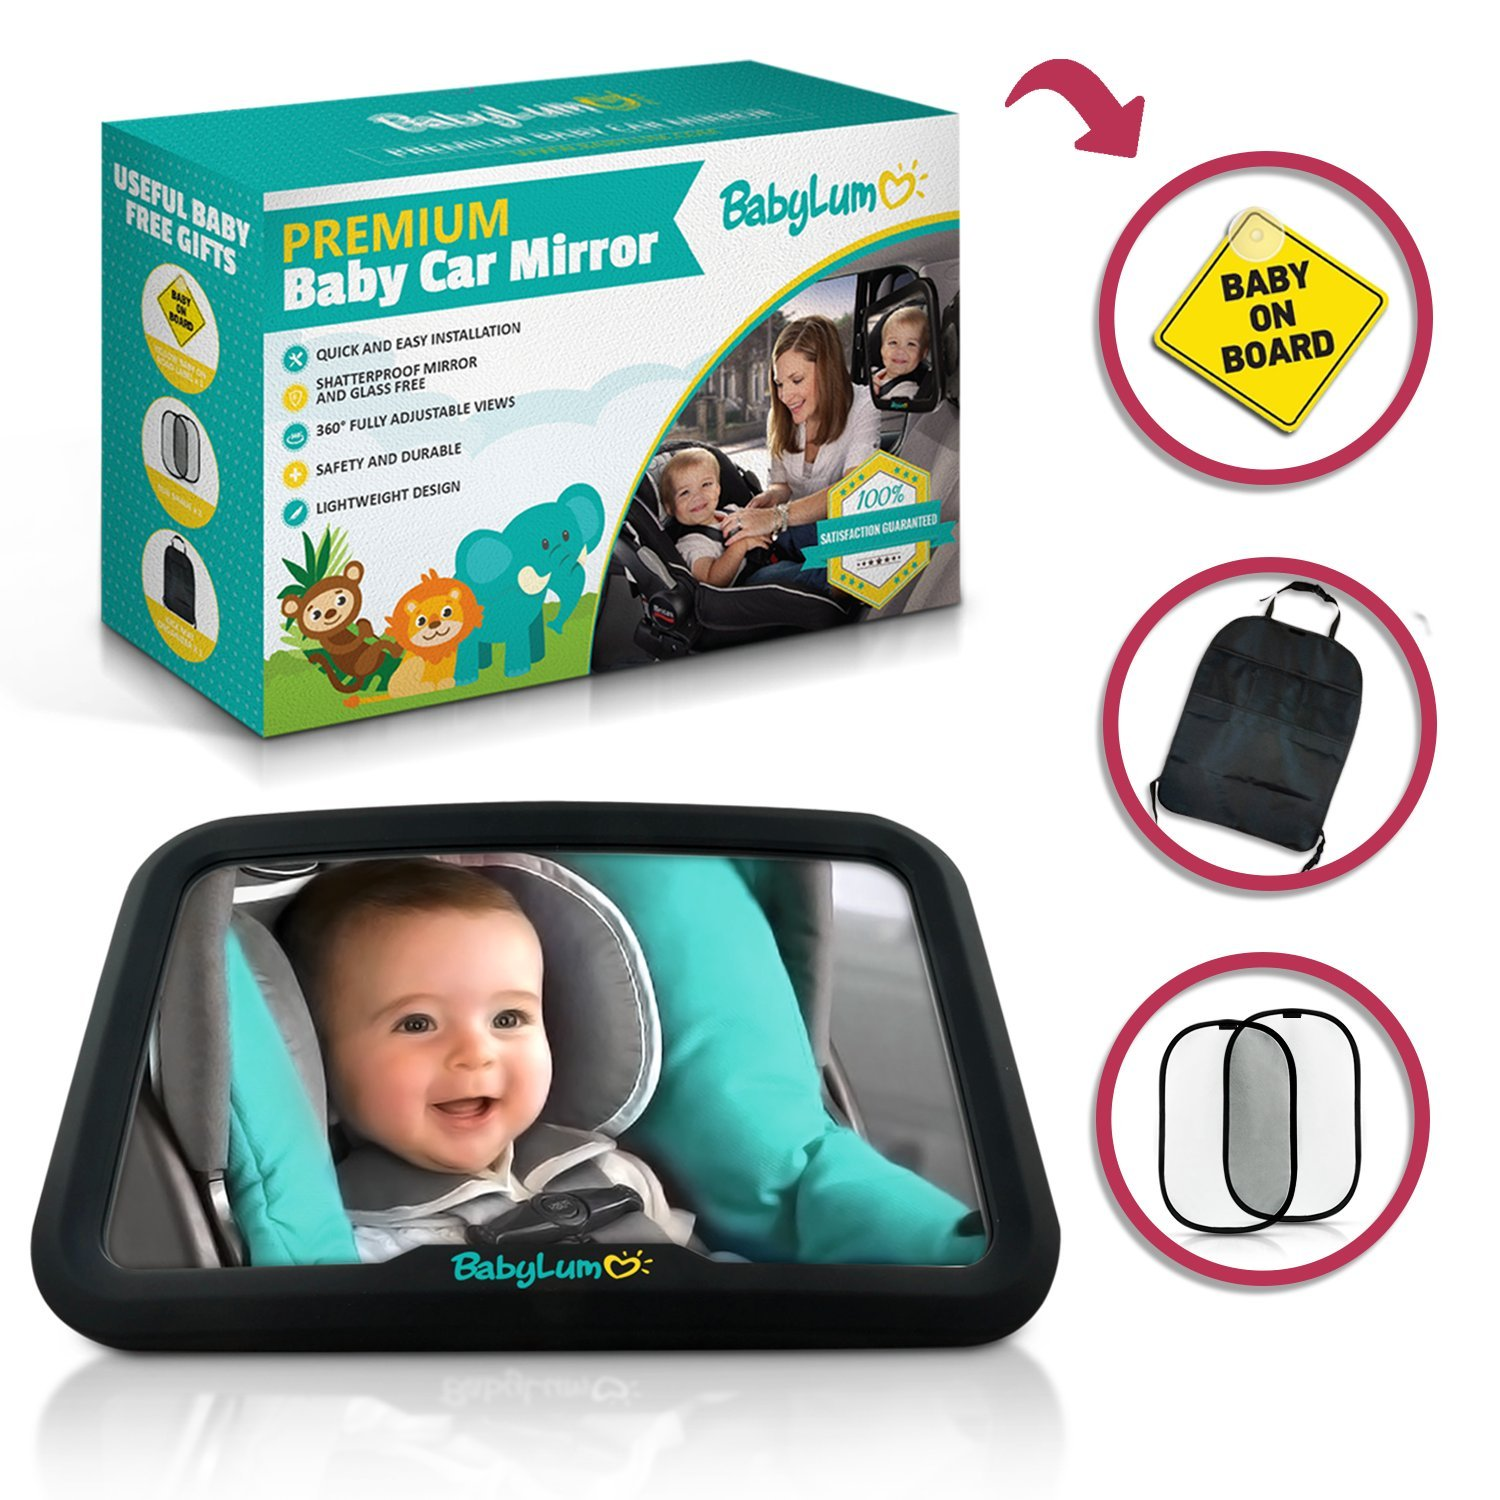 BabyLum Baby Backseat Car Mirror - View Infant in Rear Facing Carseat, Crash Safe, Crystal Clear Large Shatterproof Mirror, Include 1 Baby On Board Sign, Kick Mat, 2 Sun Shades 432244173